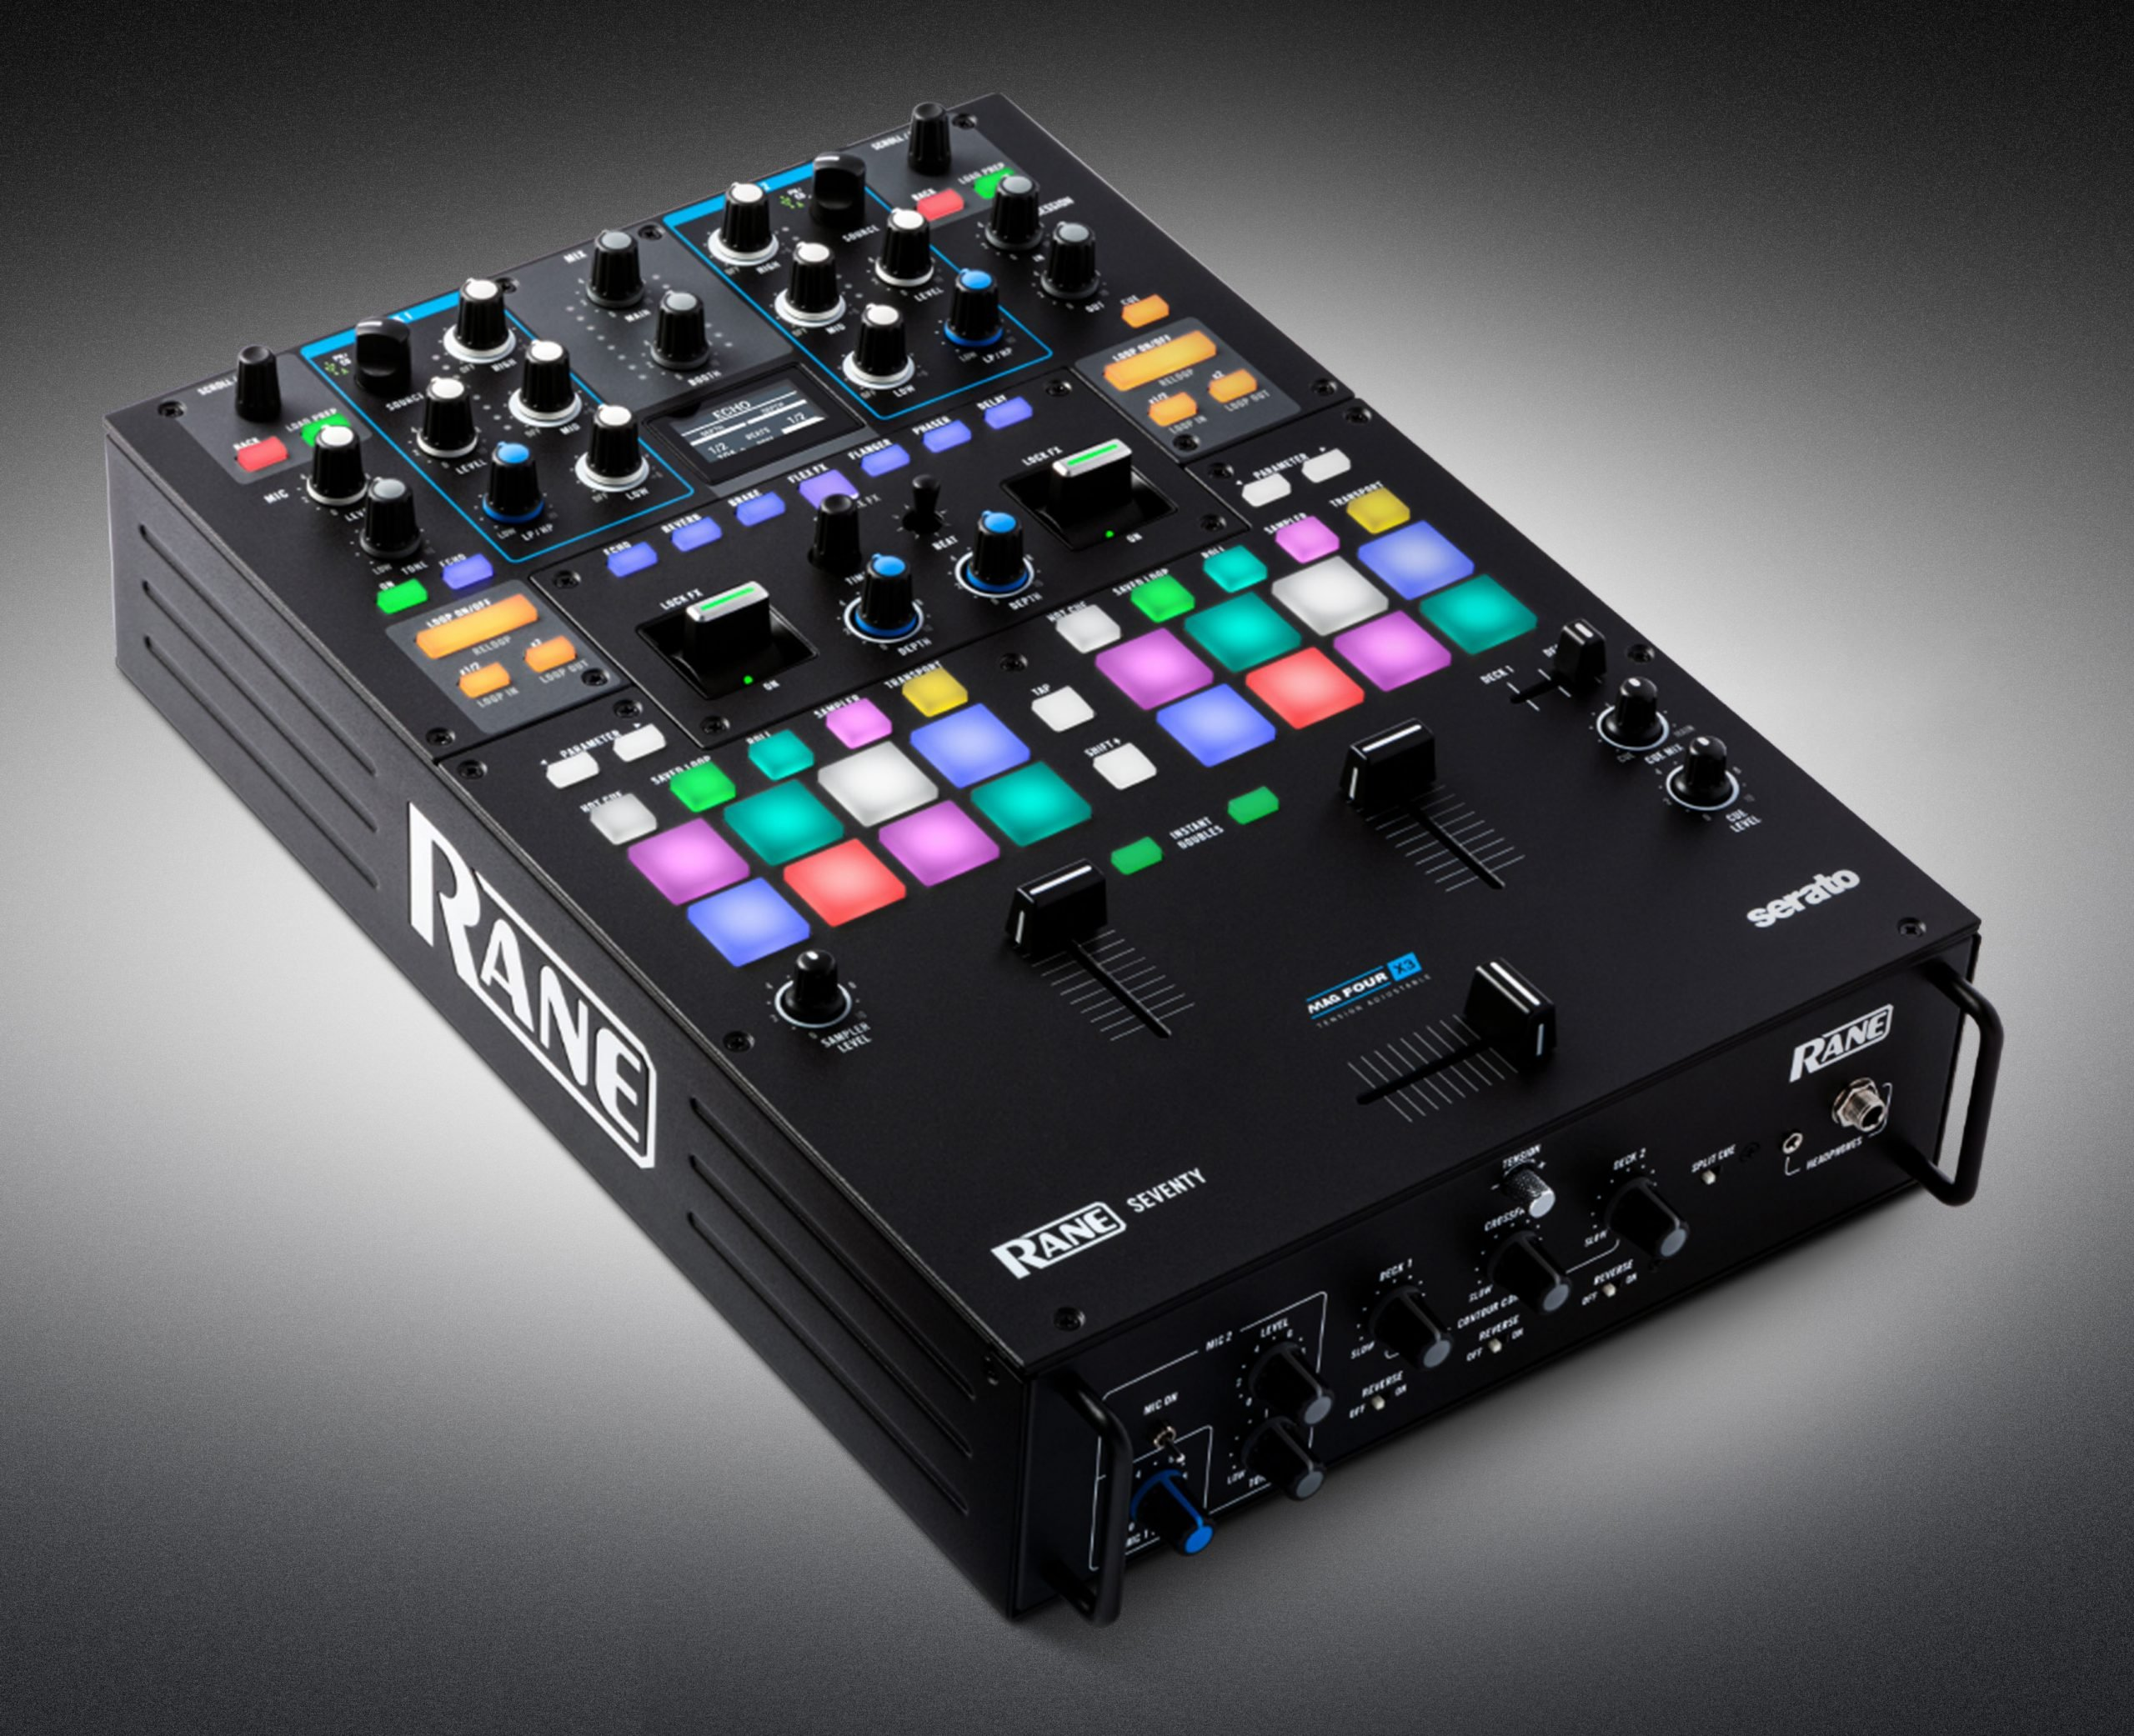 NAMM 2020: Not the Sixty Two sequel, but a Rane Seventy 4